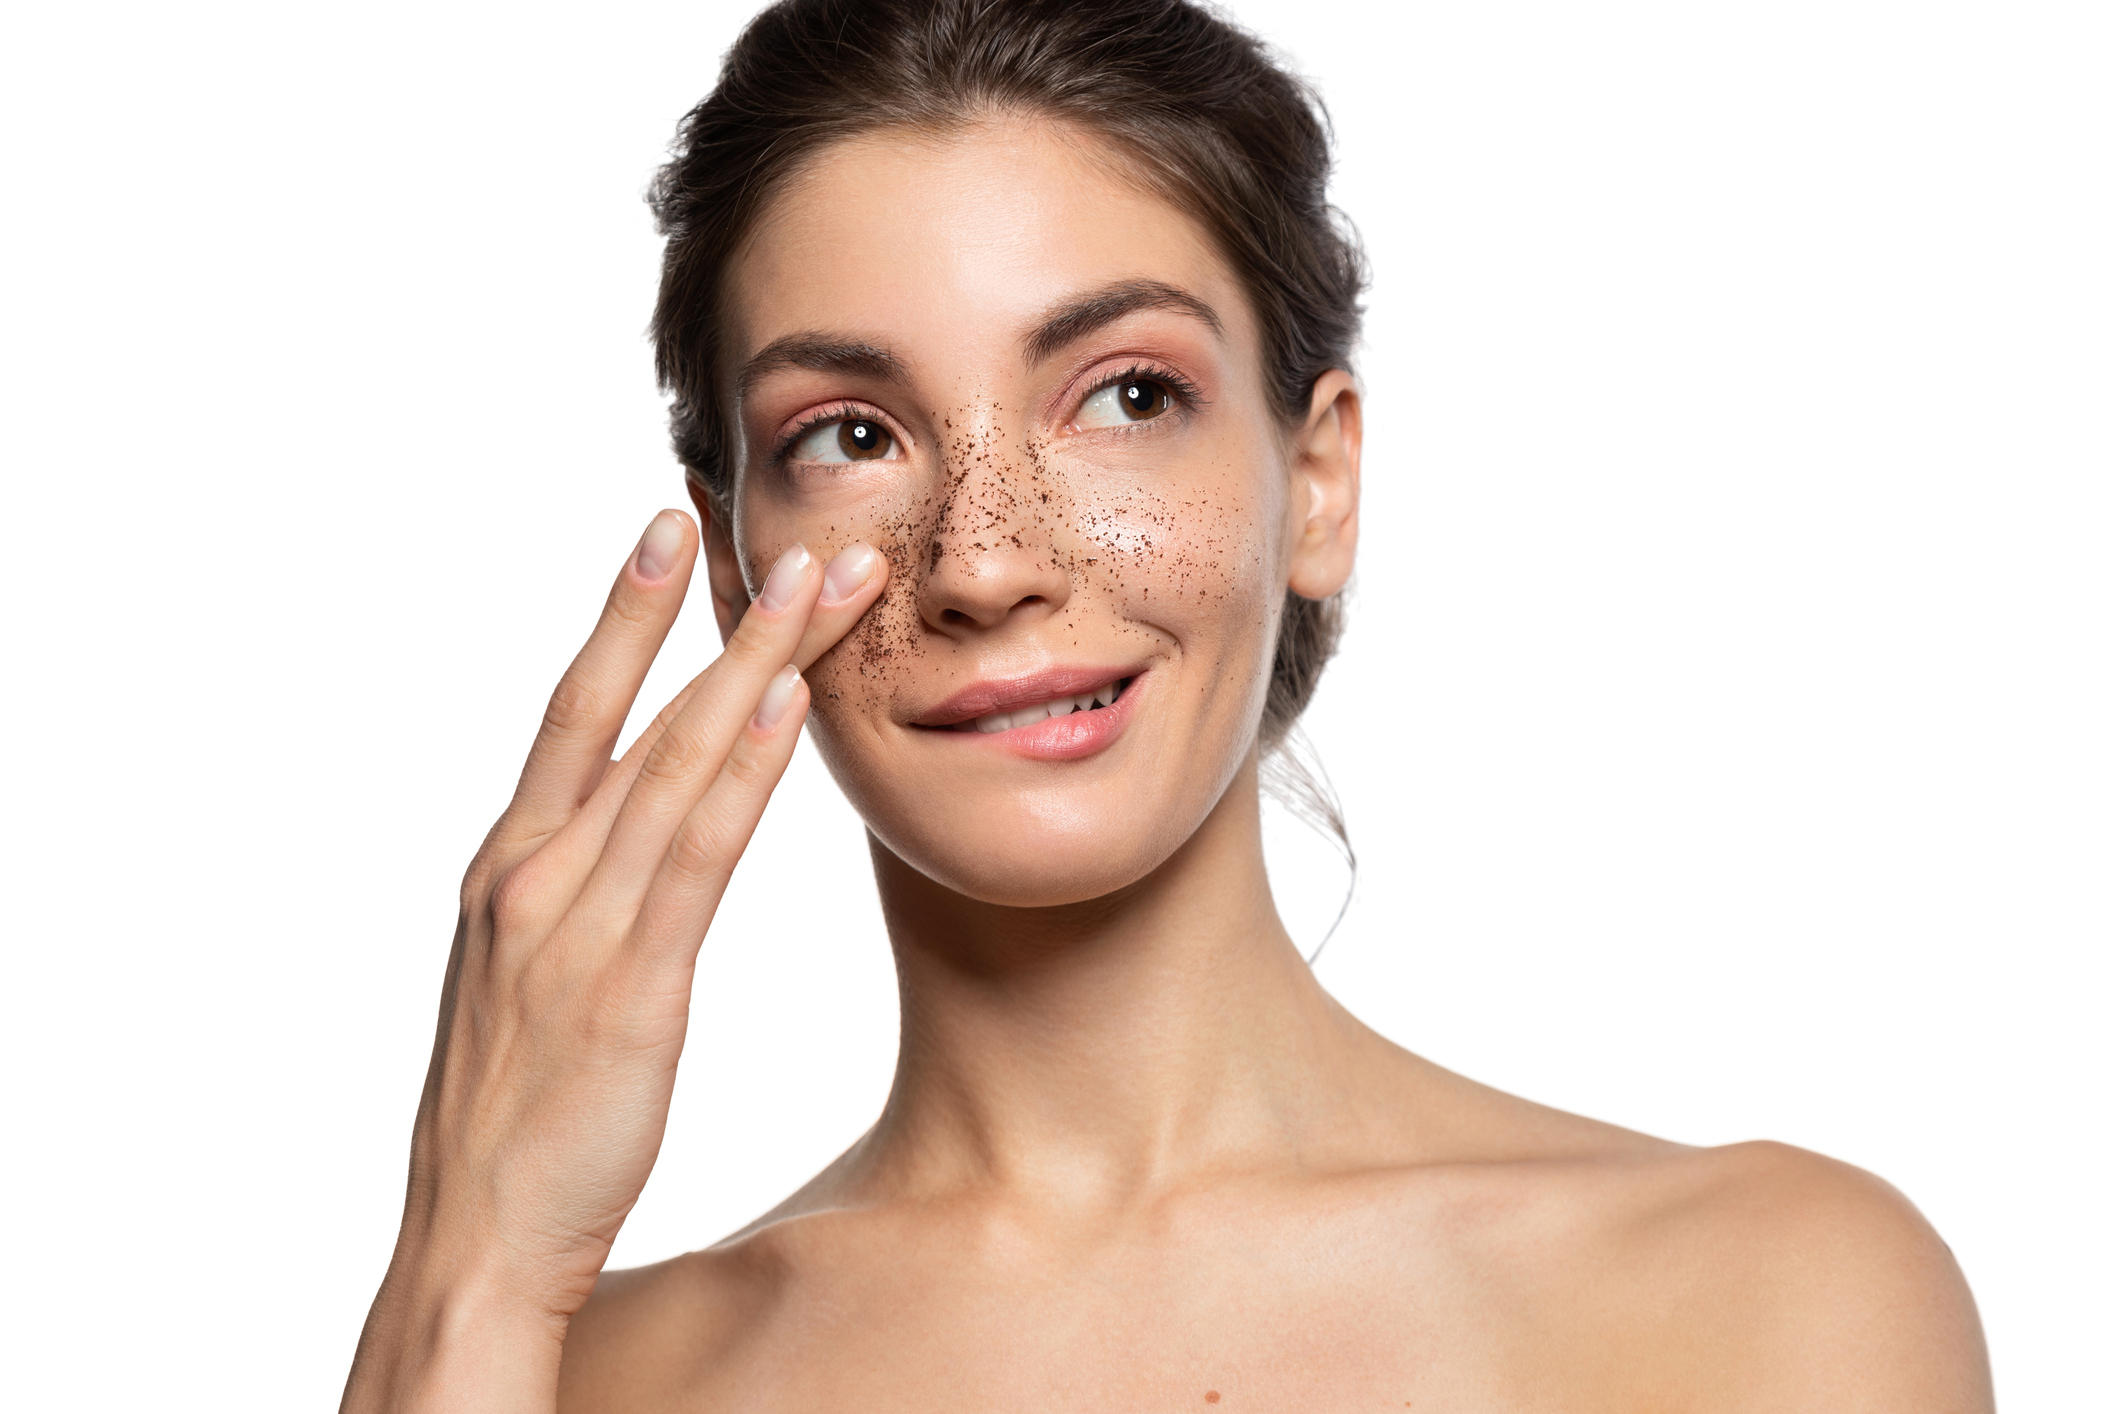 Young woman applying exfoliating scrub to her face